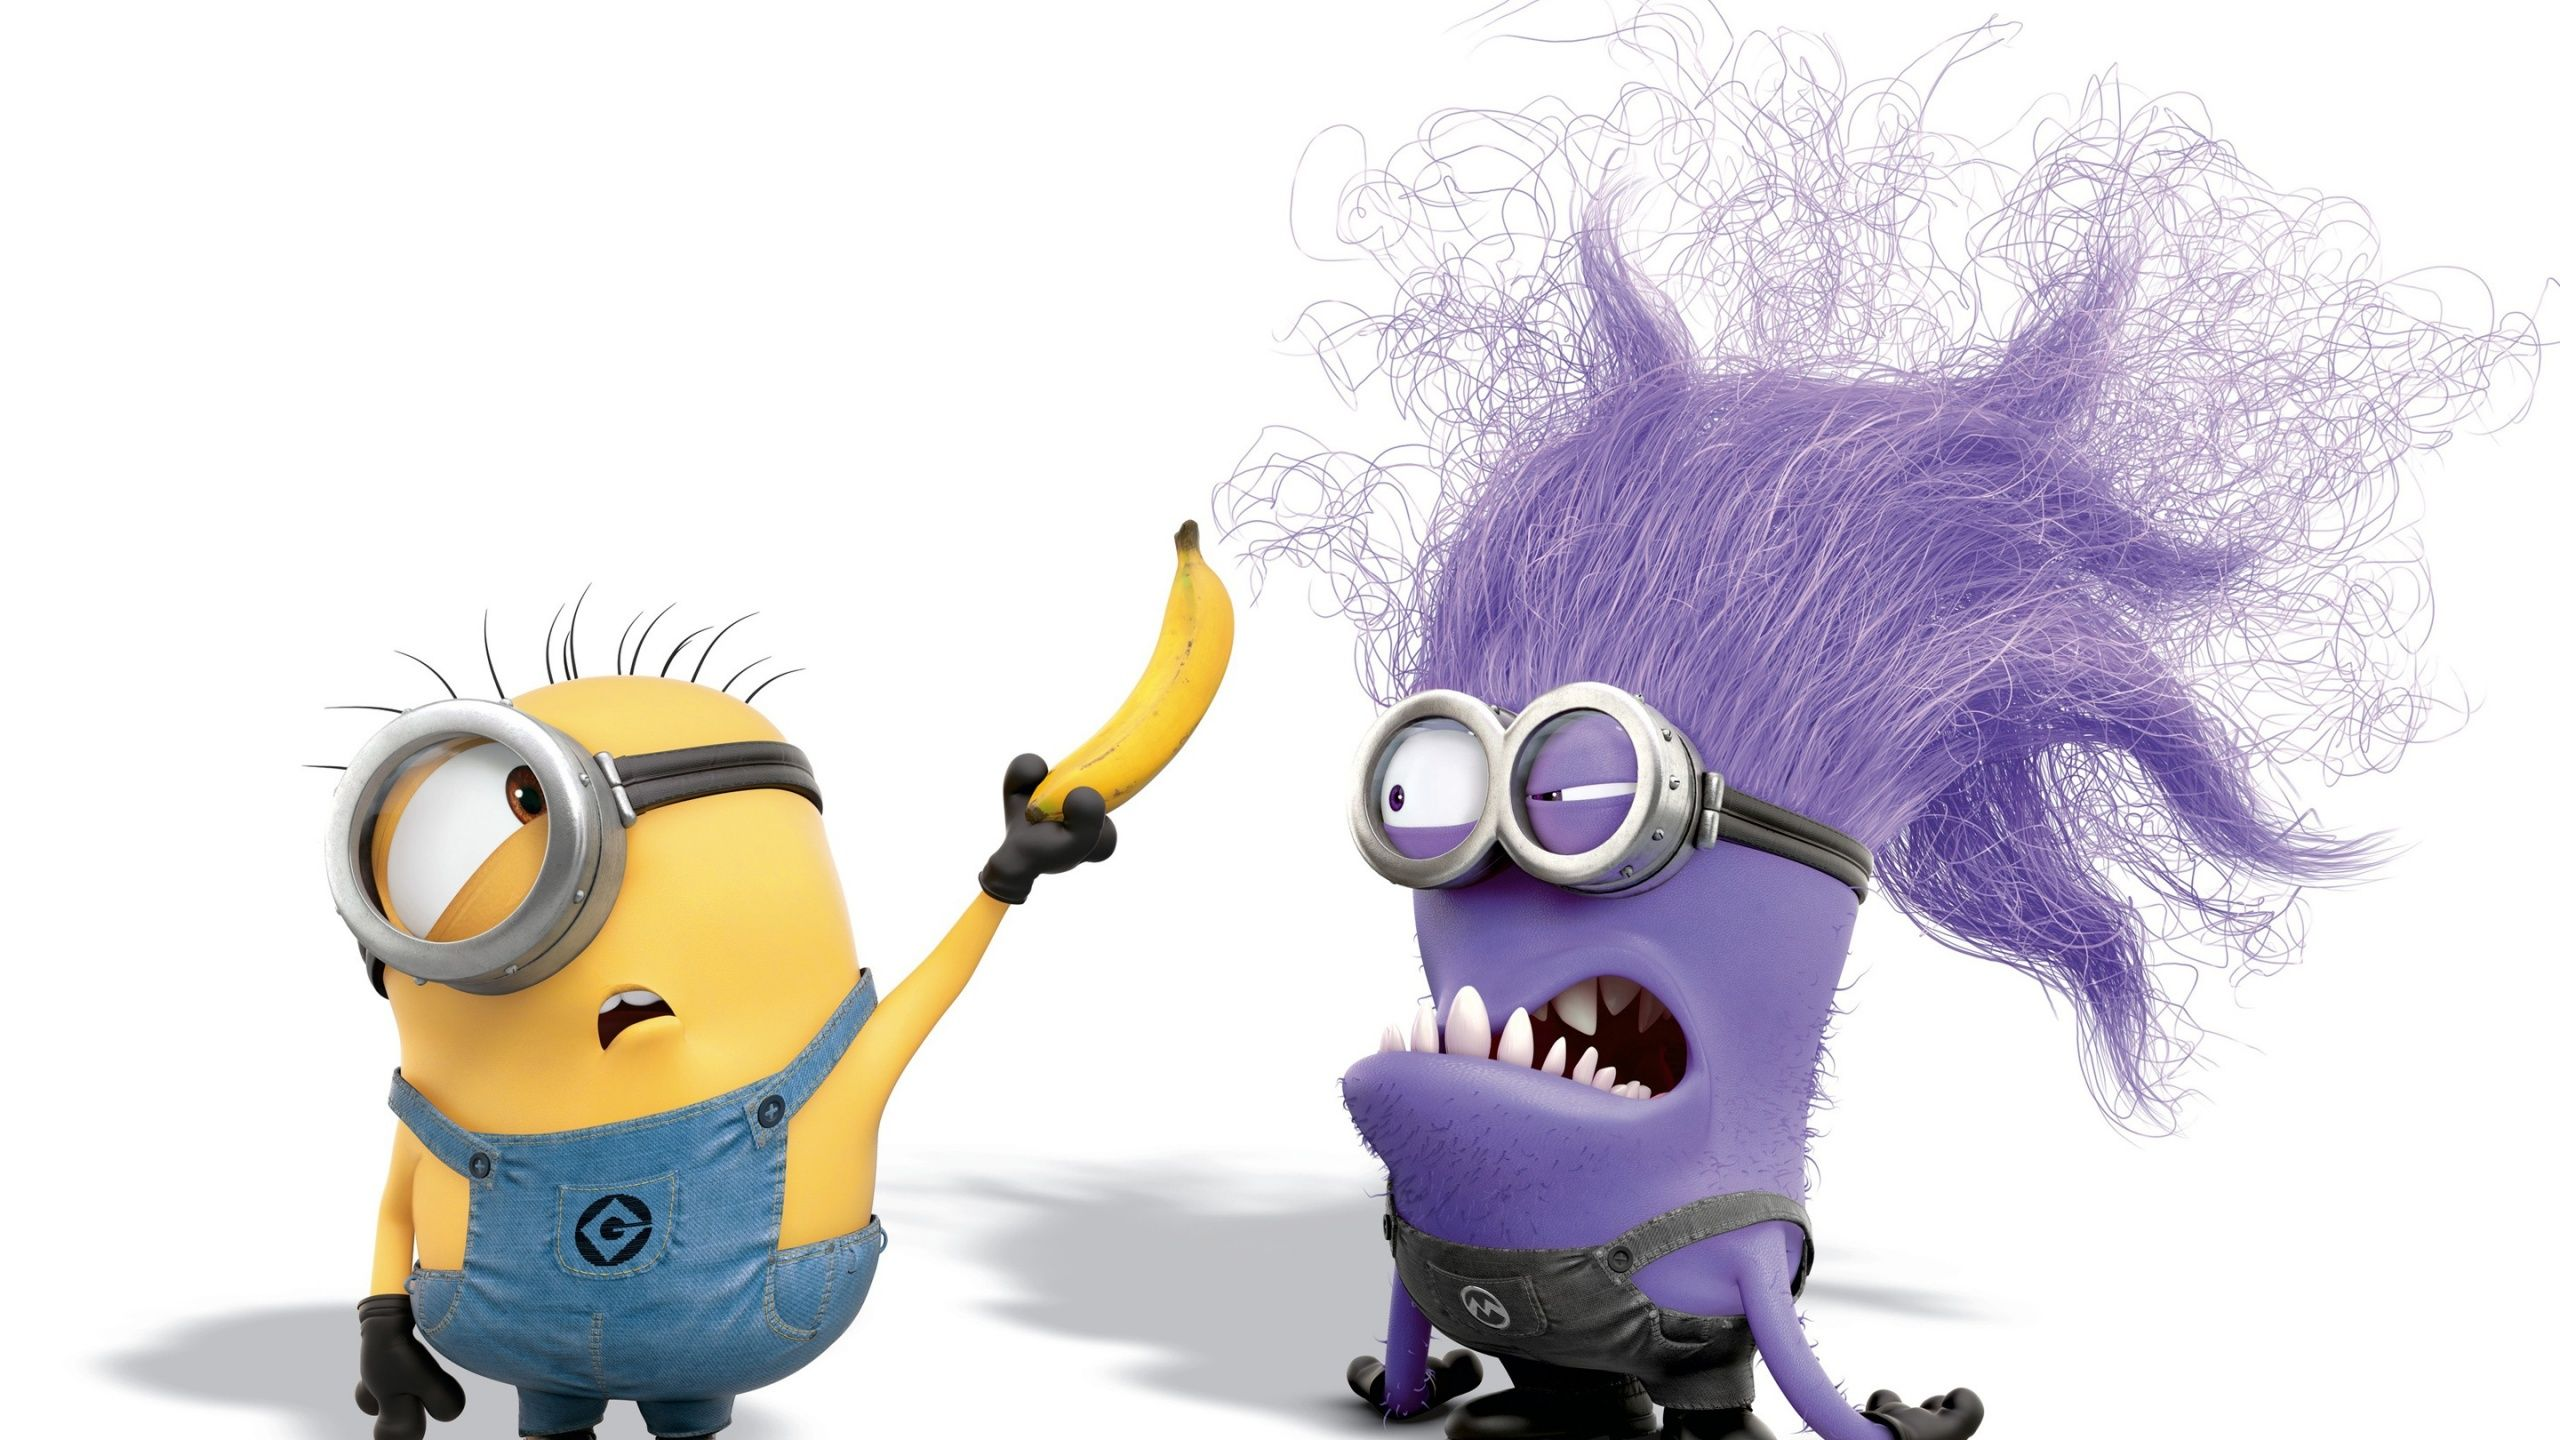 Marvelous Despicable Me Minions Wallpapers HD Wallpapers